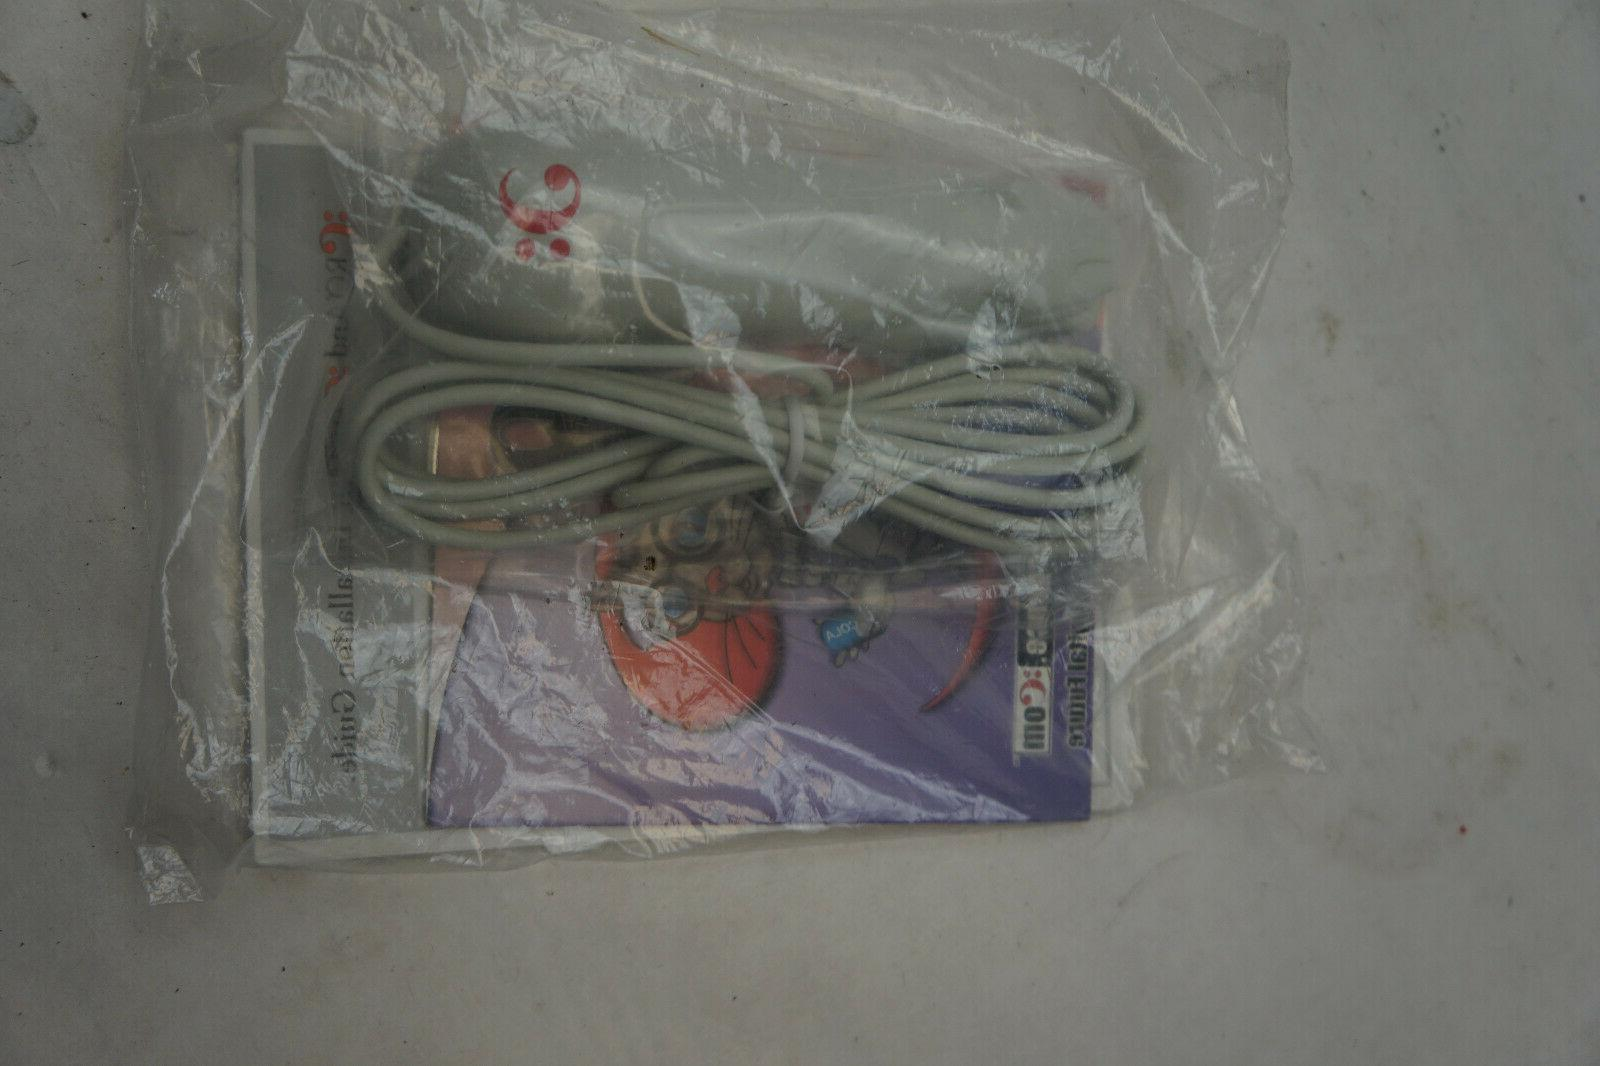 unmodified crq cue cat serial port barcode